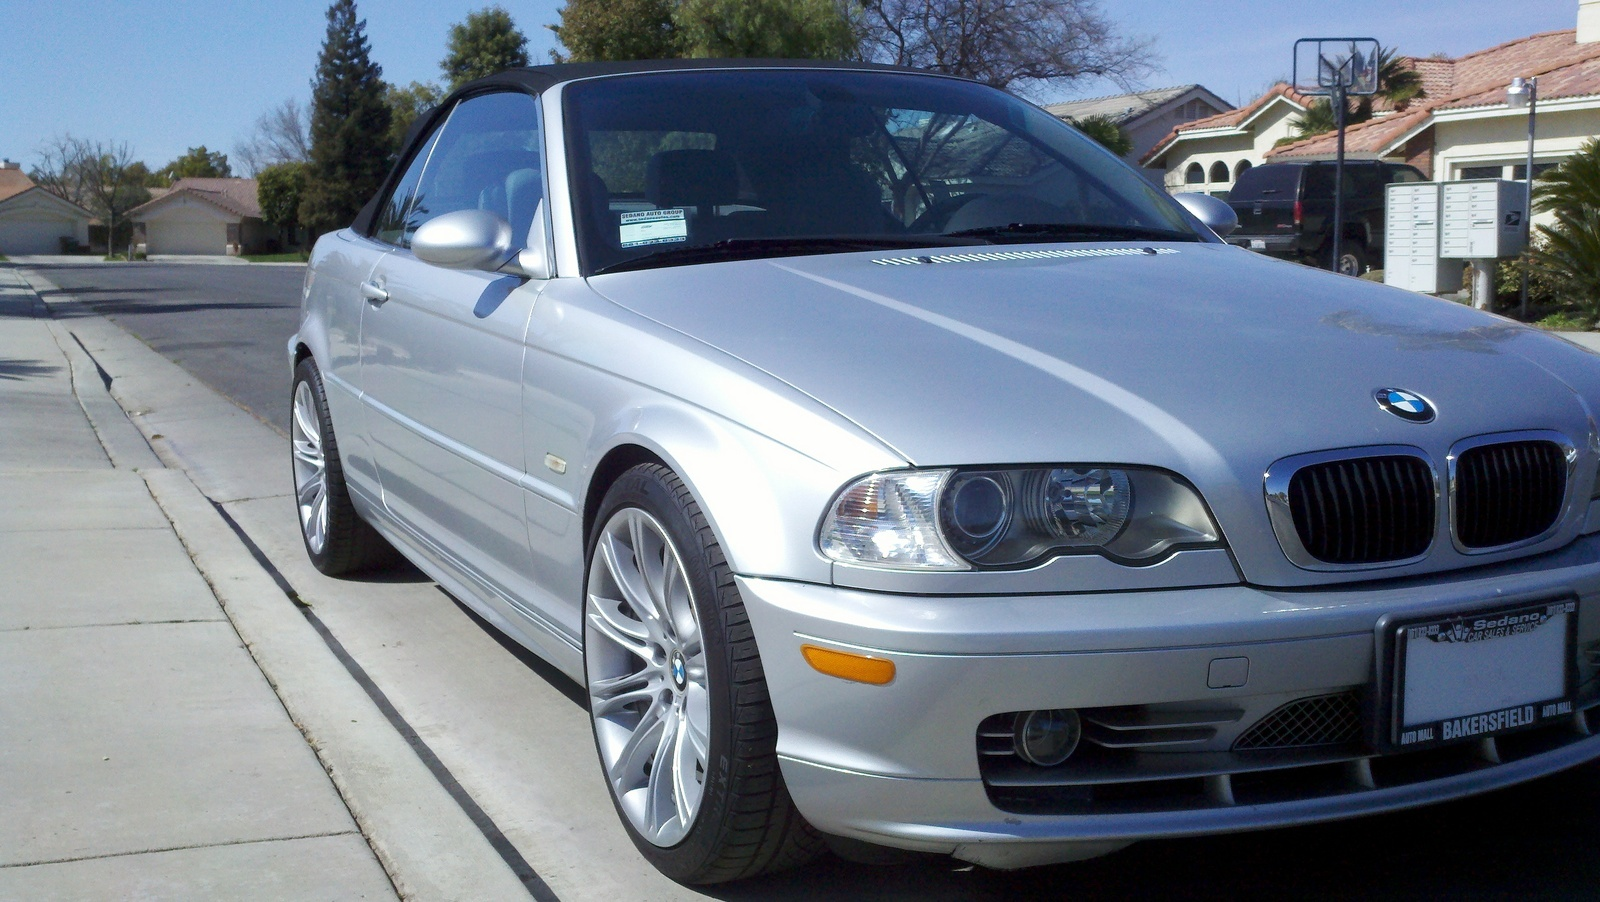 BMW 3 Series Questions - I just bought 330, it has 89,000 miles and